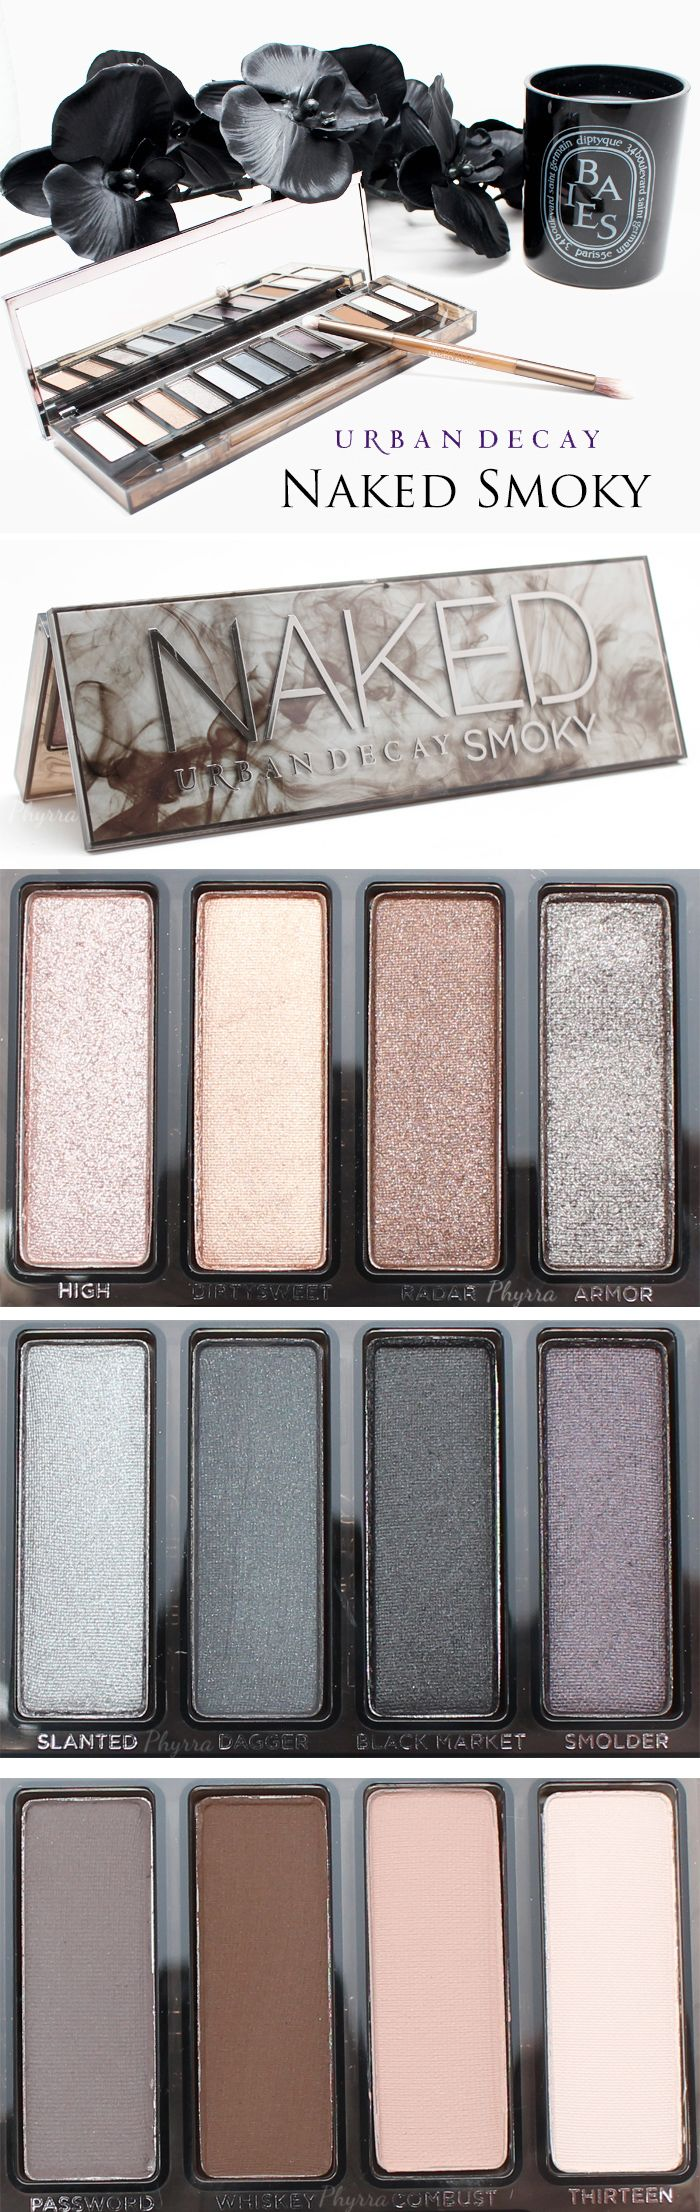 Urban Decay Naked Smoky Palette - First look video, swatches and thoughts! I need this!!